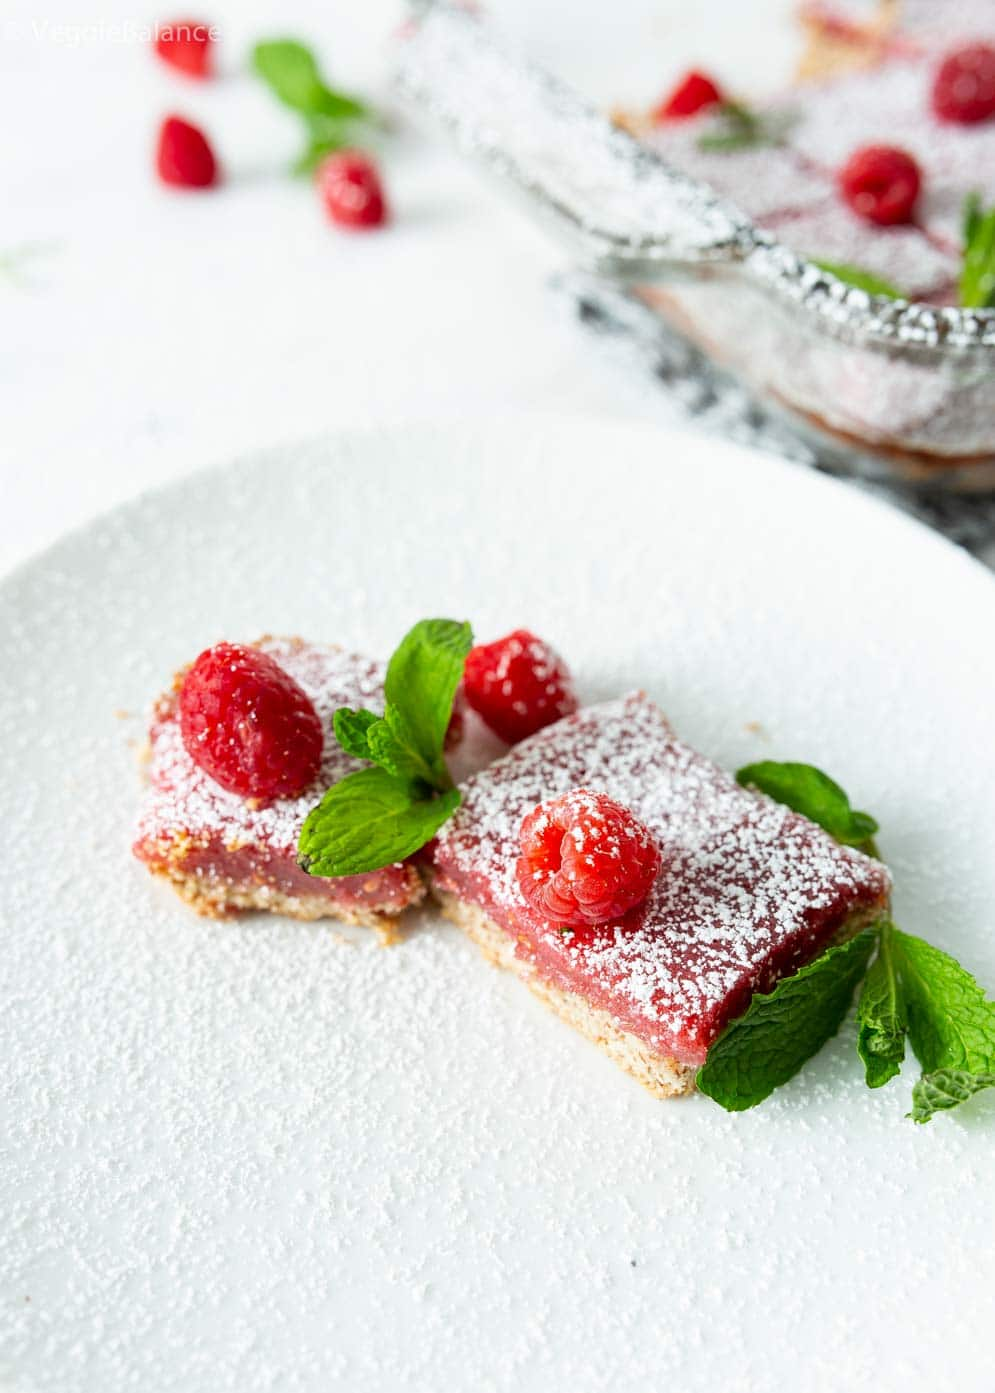 Two Vegan Raspberry Lemon Bars with fresh raspberries and mint leaves decorated around on a small plate